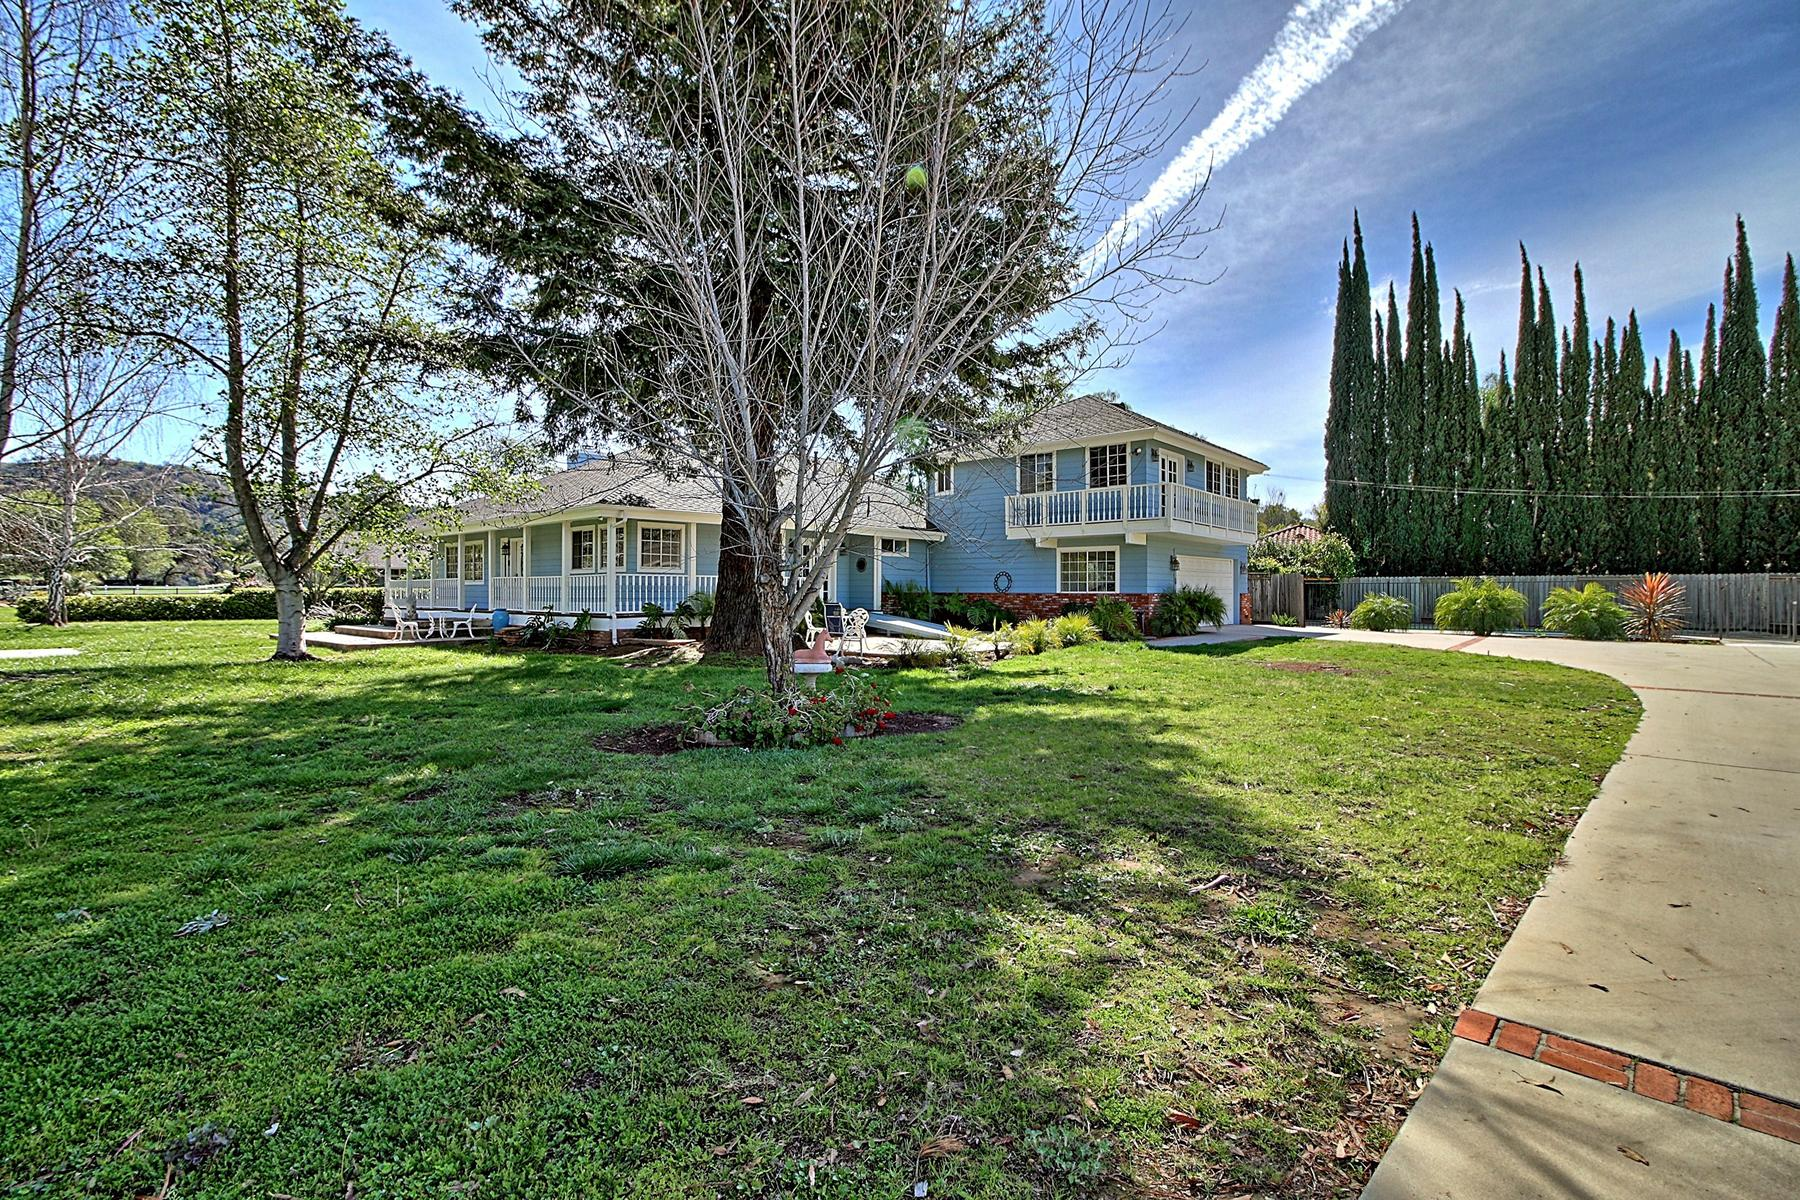 Additional photo for property listing at Oak View Horse Ranch 1159-1163 Spring Street Oak View, California 93022 United States